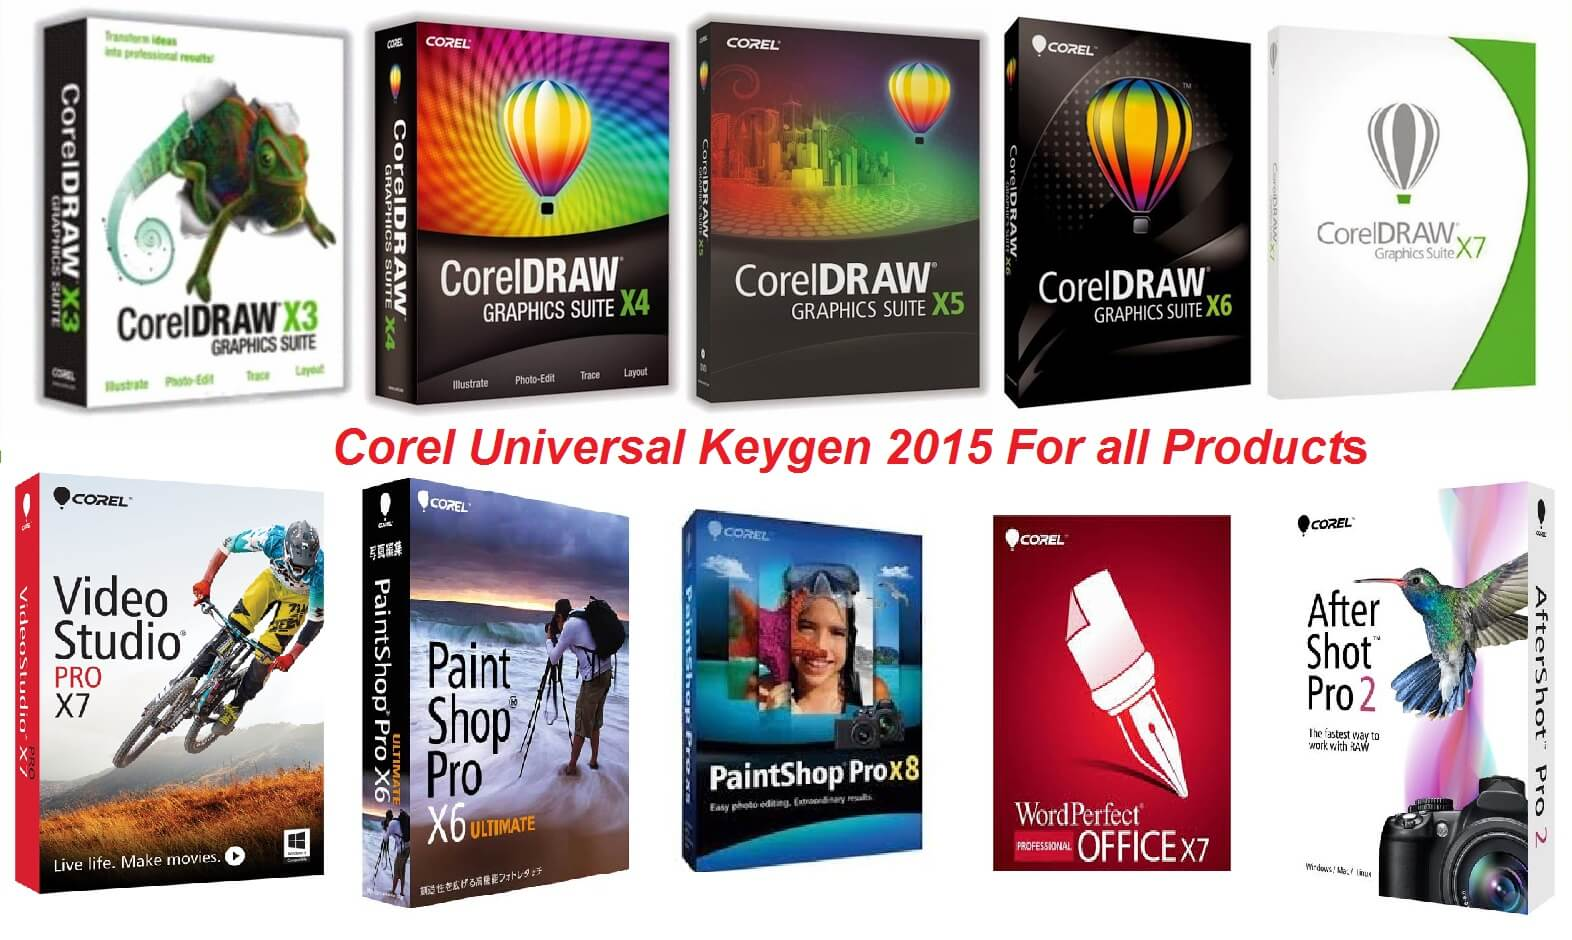 Corel Universal Keygen 2015 Free Serial Key for all Products